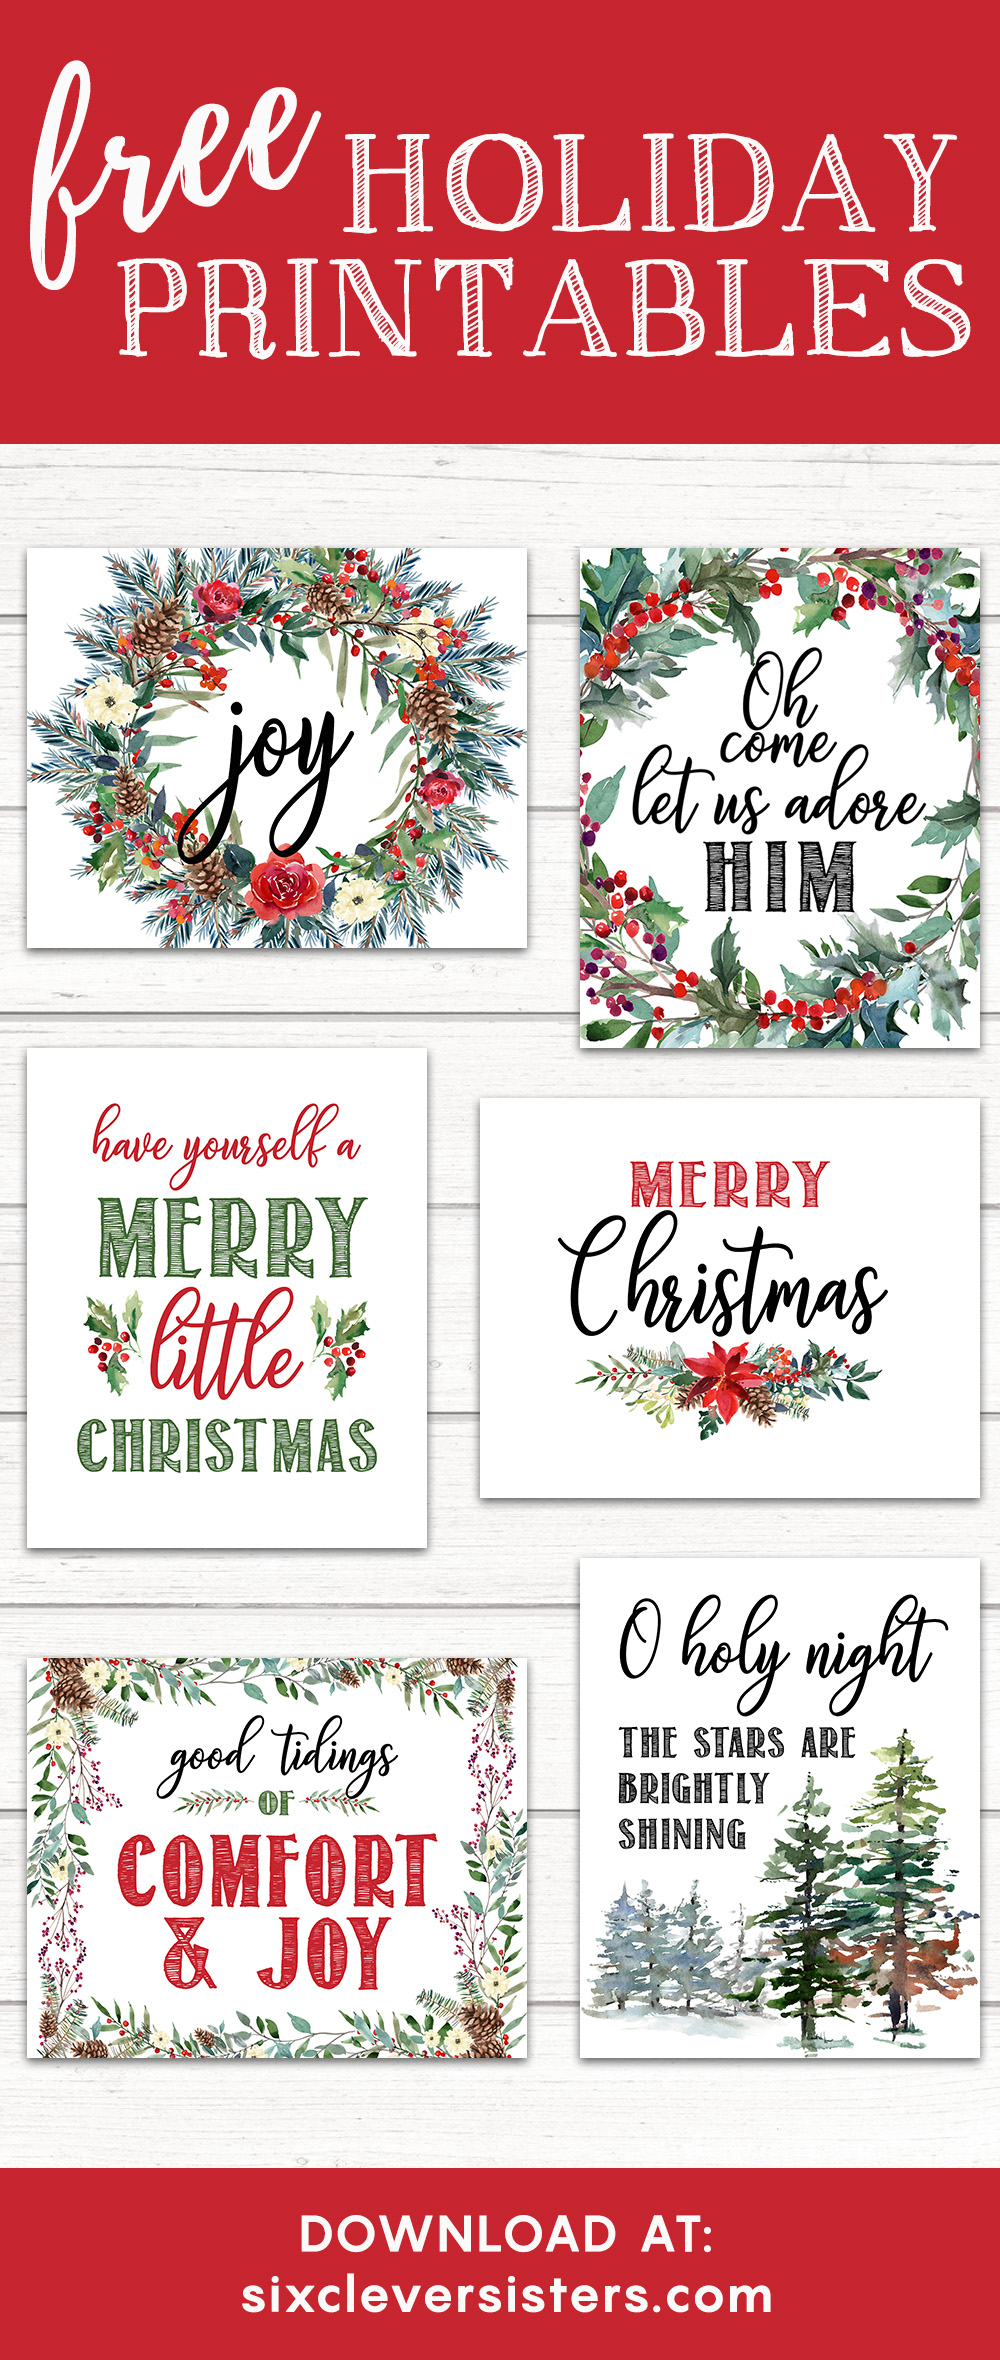 photo about Merry Christmas Printable referred to as 6 Totally free Printable Xmas Symptoms - 6 Smart Sisters